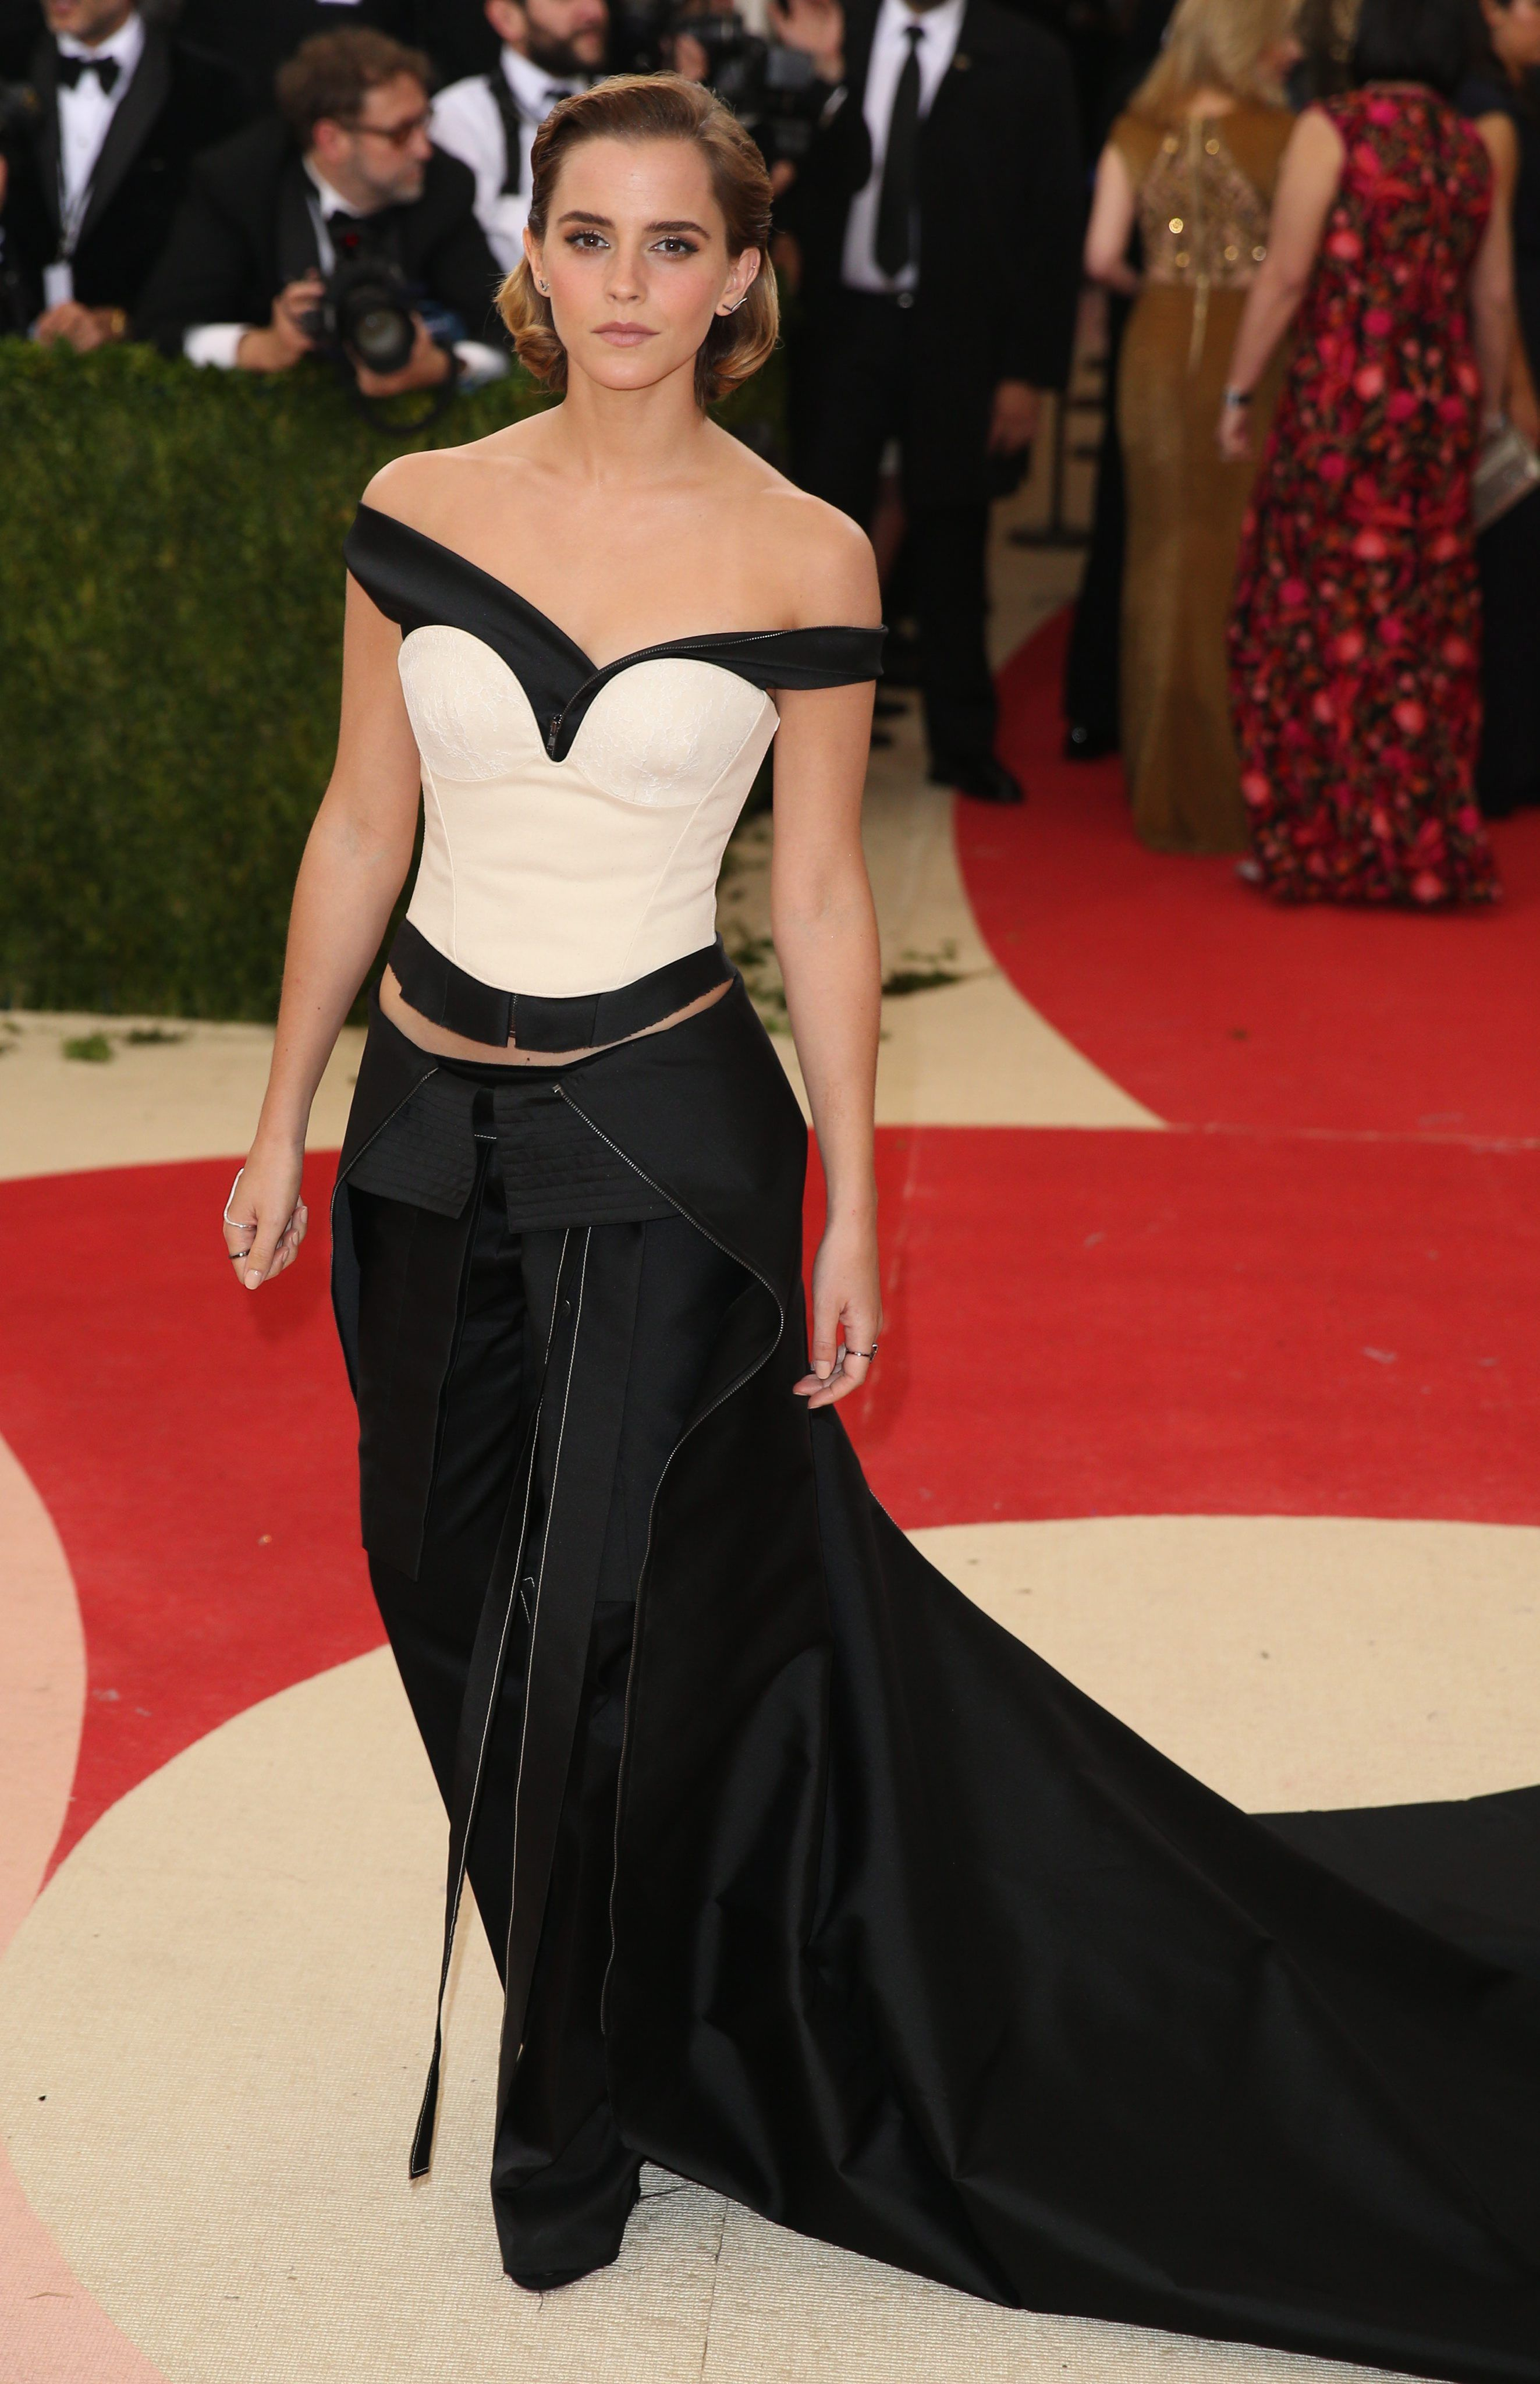 Emma Watson In Calvin Klein At 2016 Met Gala In New York City Check More At Http Fashnberry Com Emma Watson In C Emma Watson Dress Met Gala Emma Watson Pixie